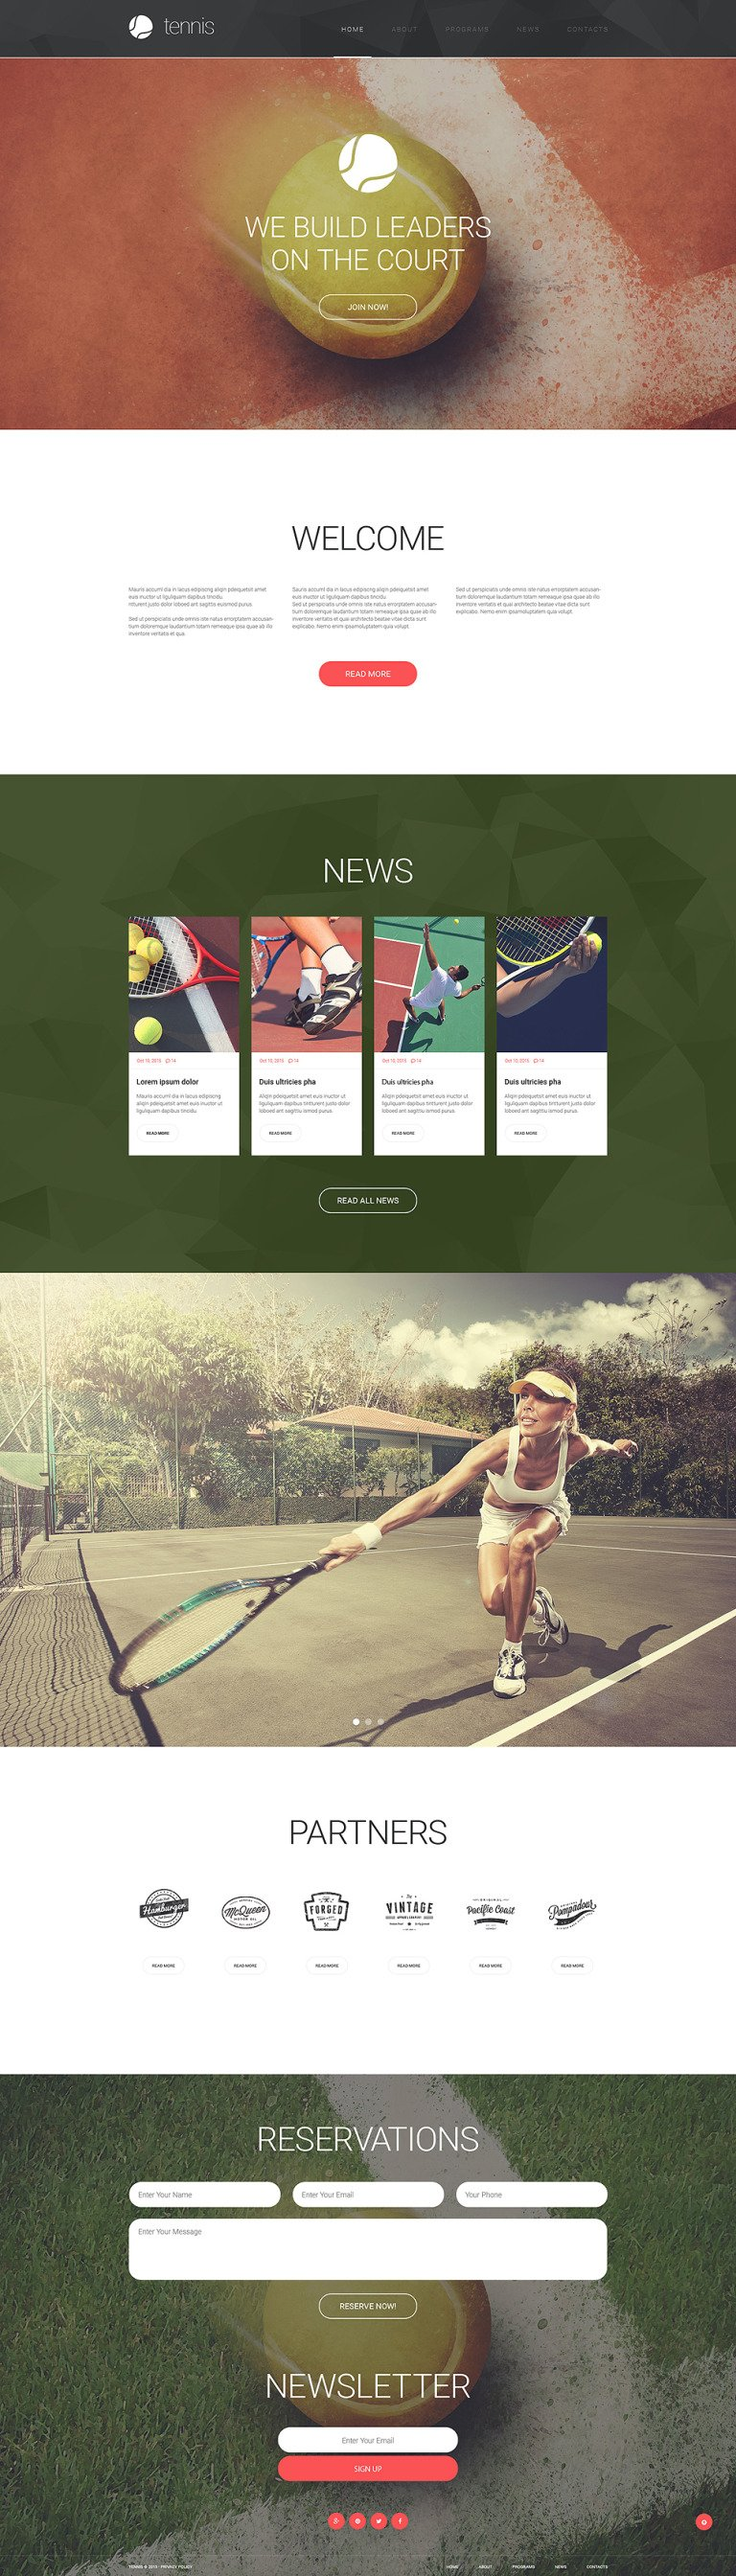 Tennis Responsive Website Template New Screenshots BIG